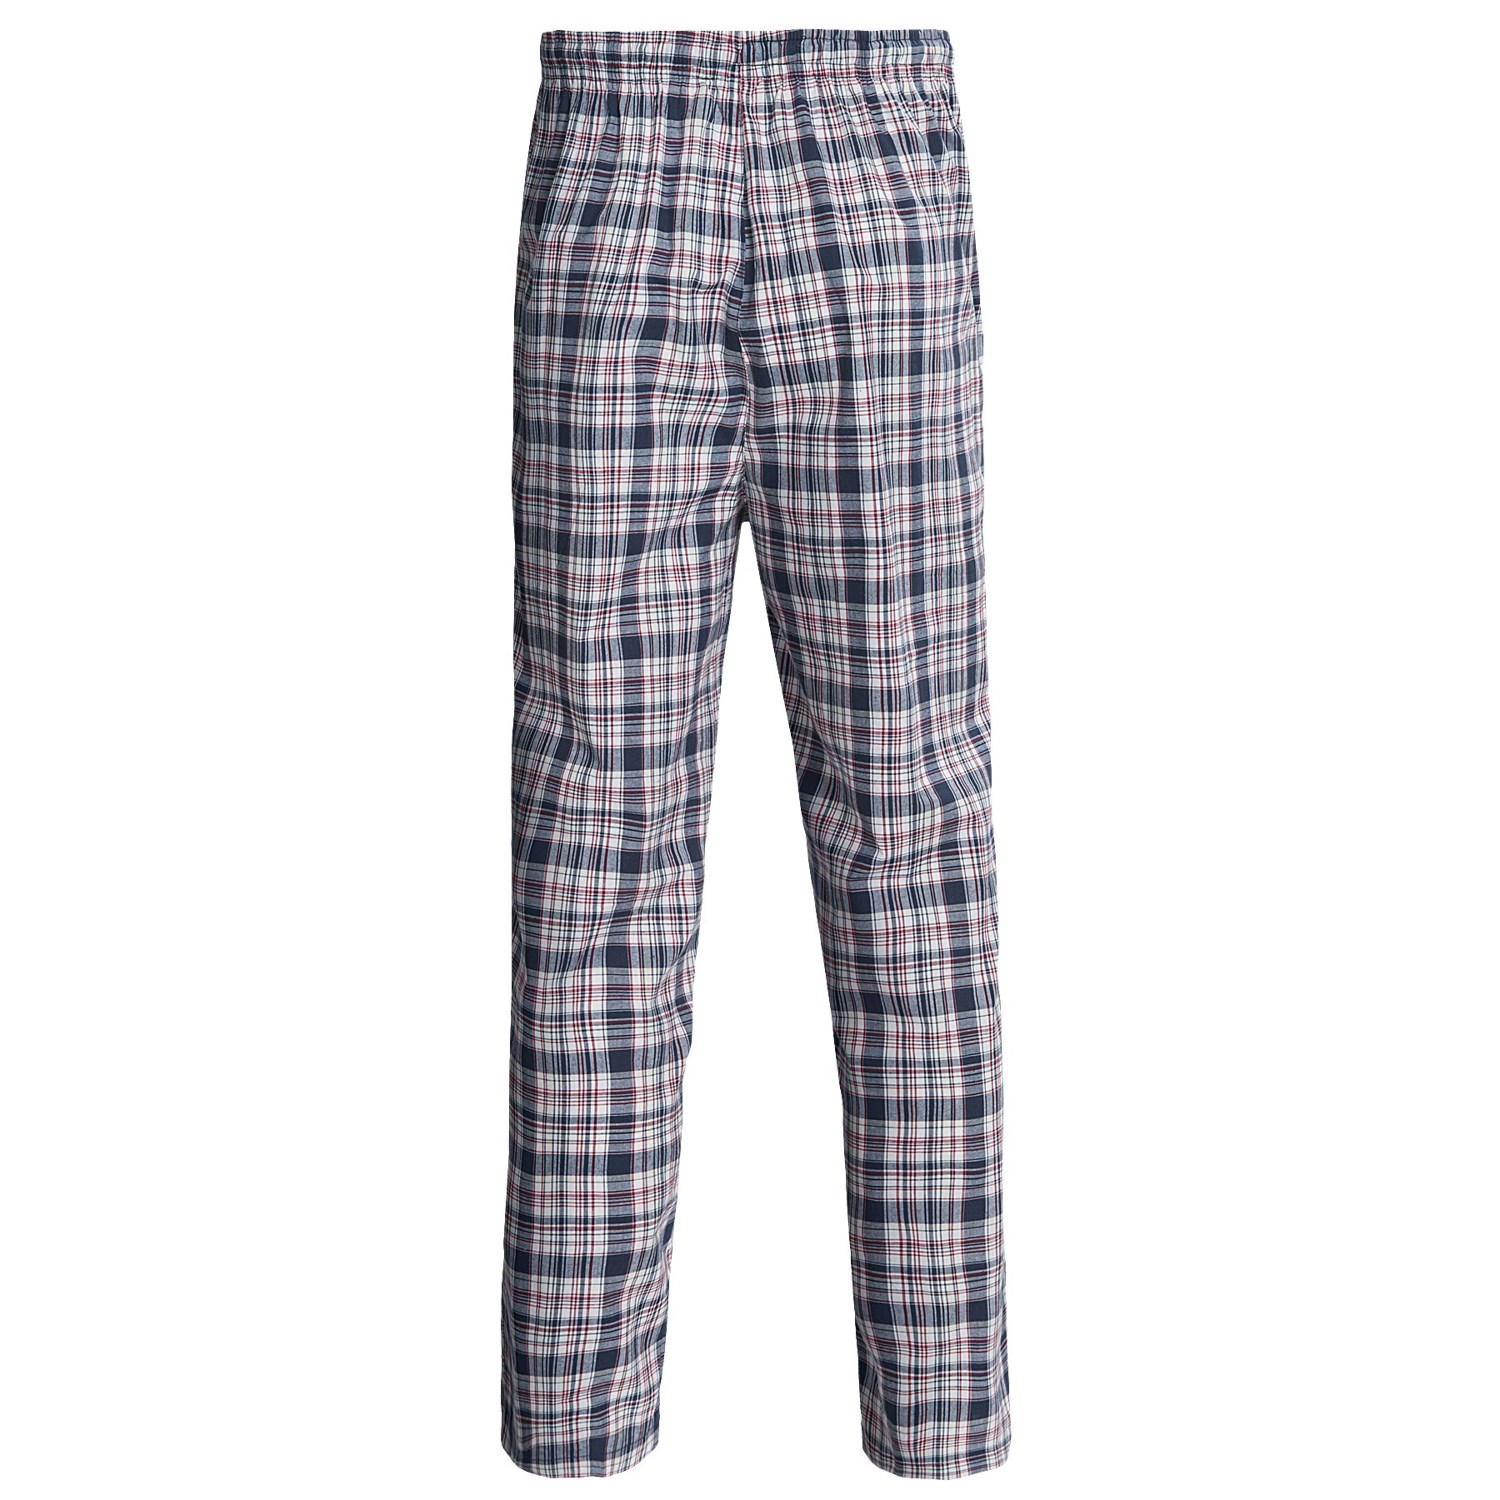 Shop at Etsy to find unique and handmade boys lounge pants related items directly from our sellers. Close. Buffalo plaid lounge pant - boys pants, girls pants, unisex pants, gender neutral pants, jersey knit pants, kids lounge pants The most common boys lounge pants material is cotton.